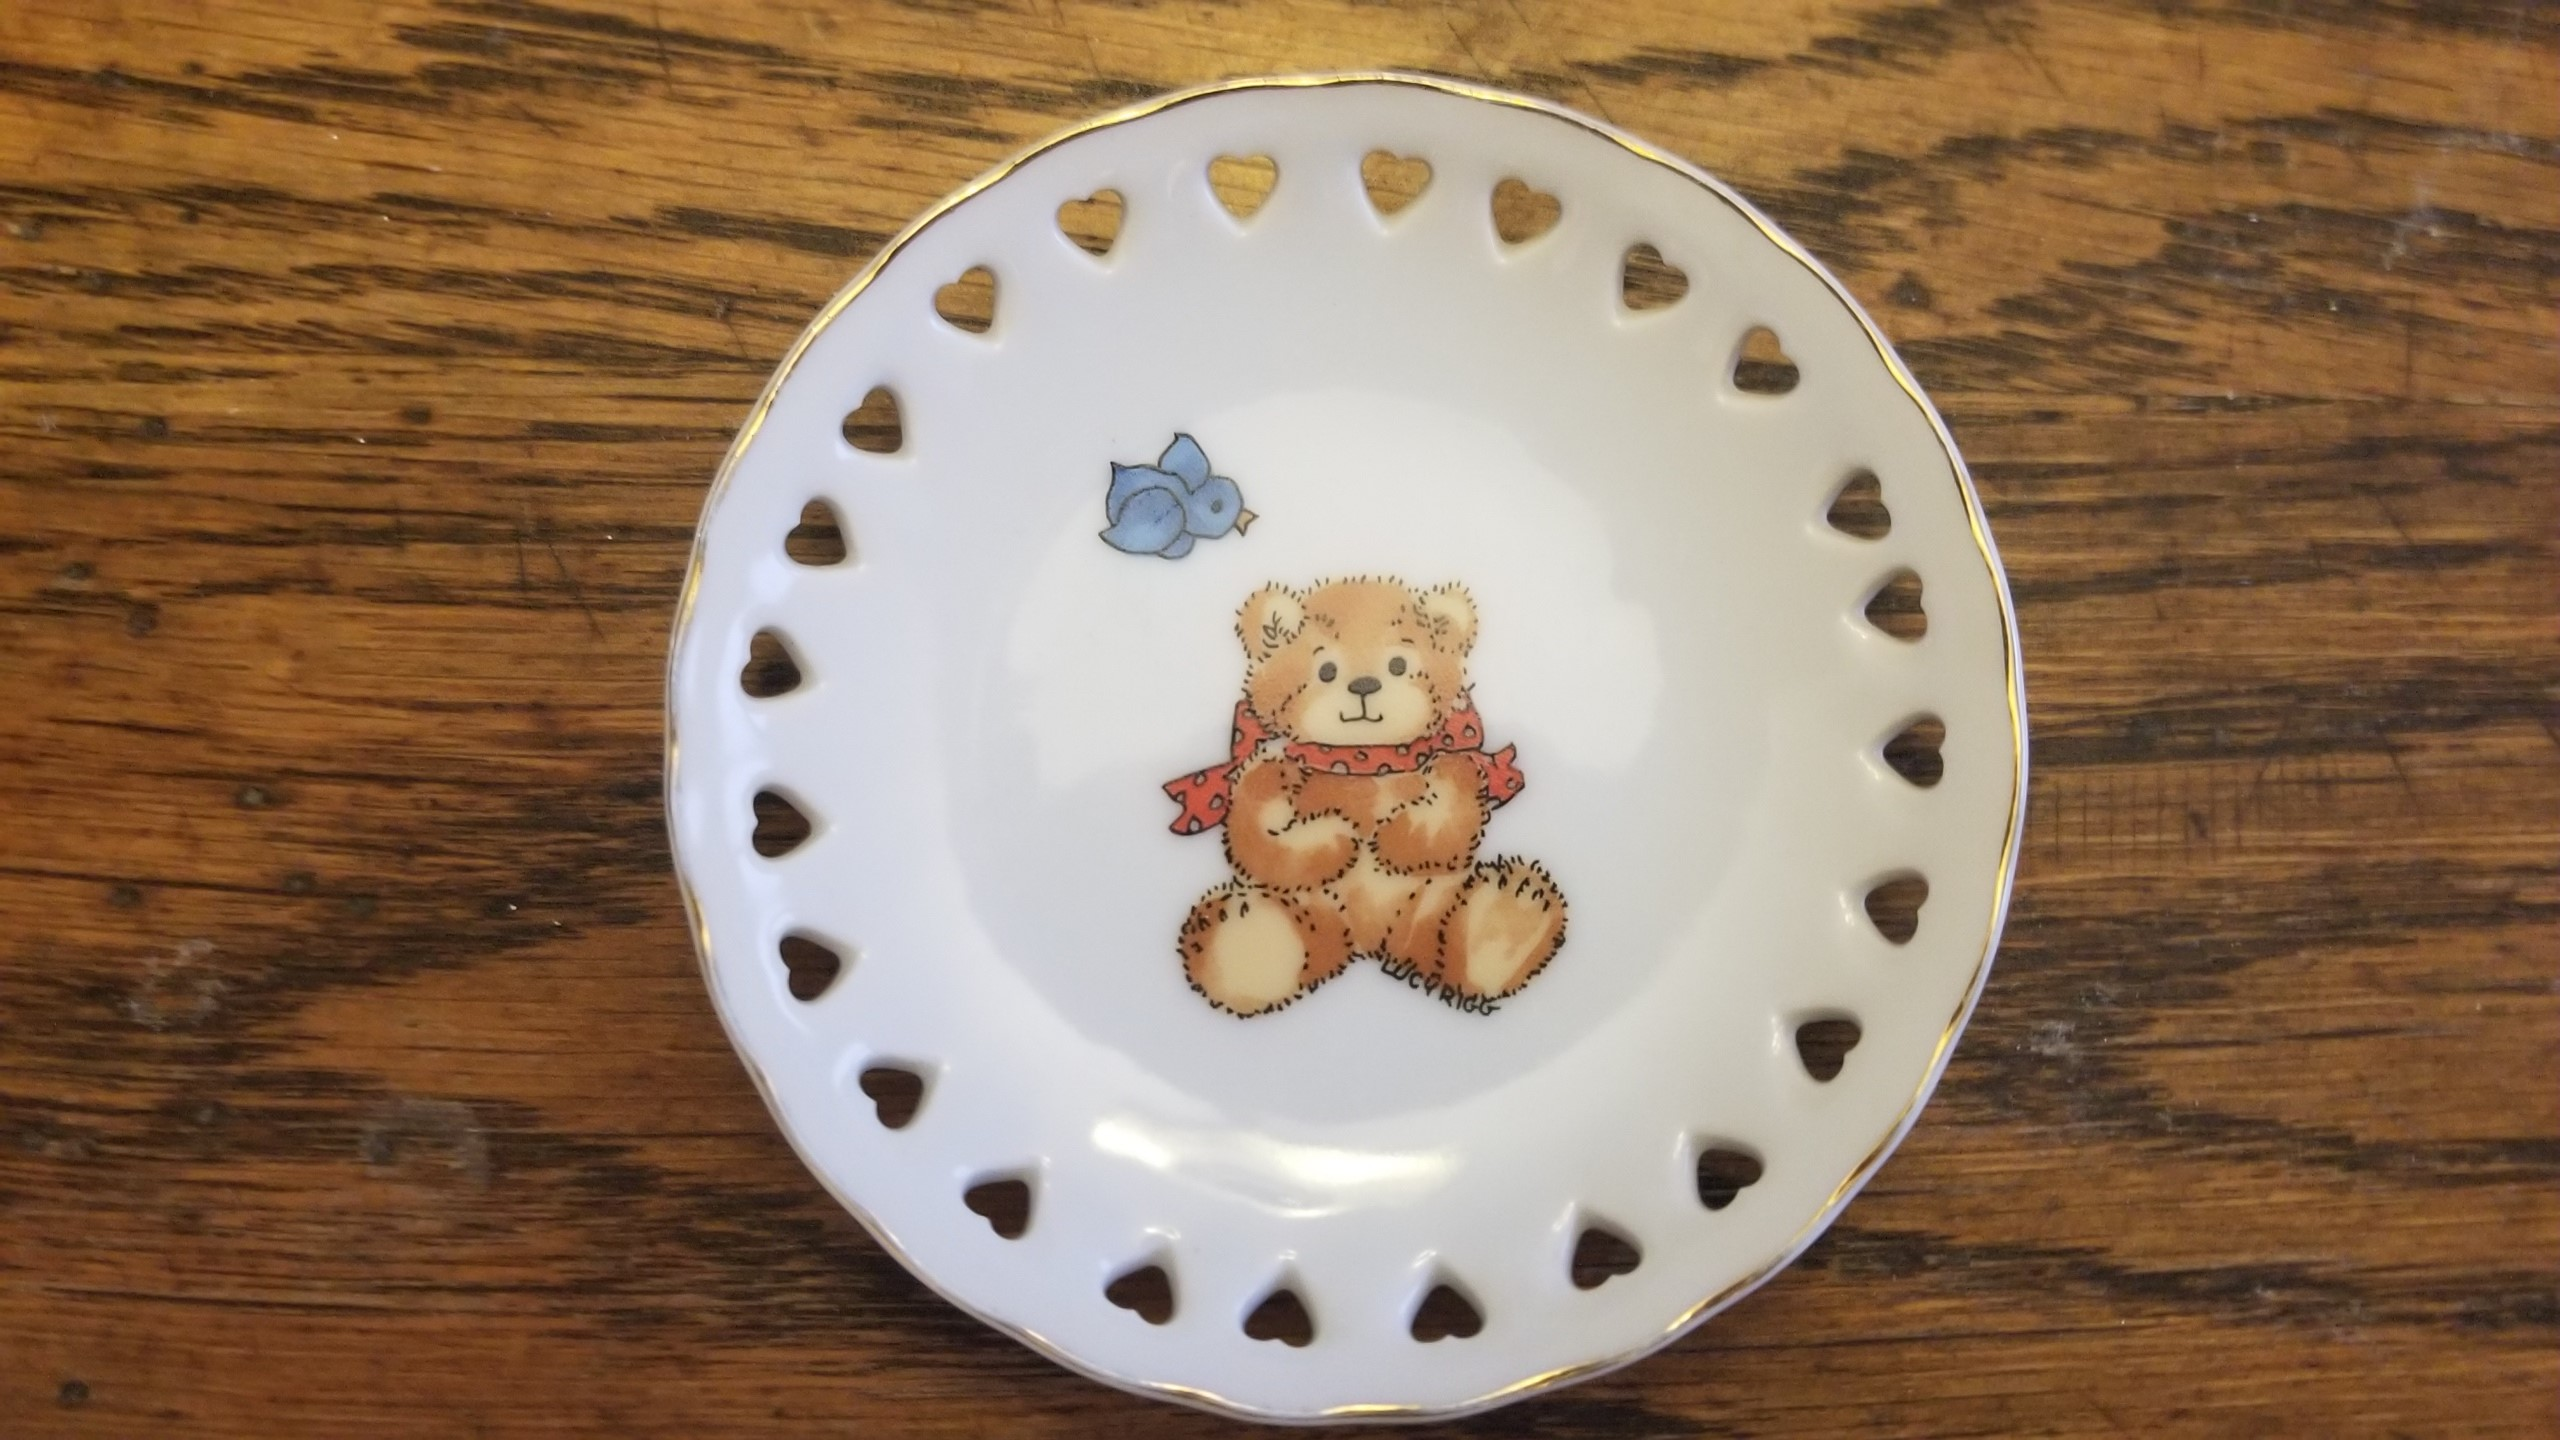 Red bow bear sitting mini plate with heart cutouts